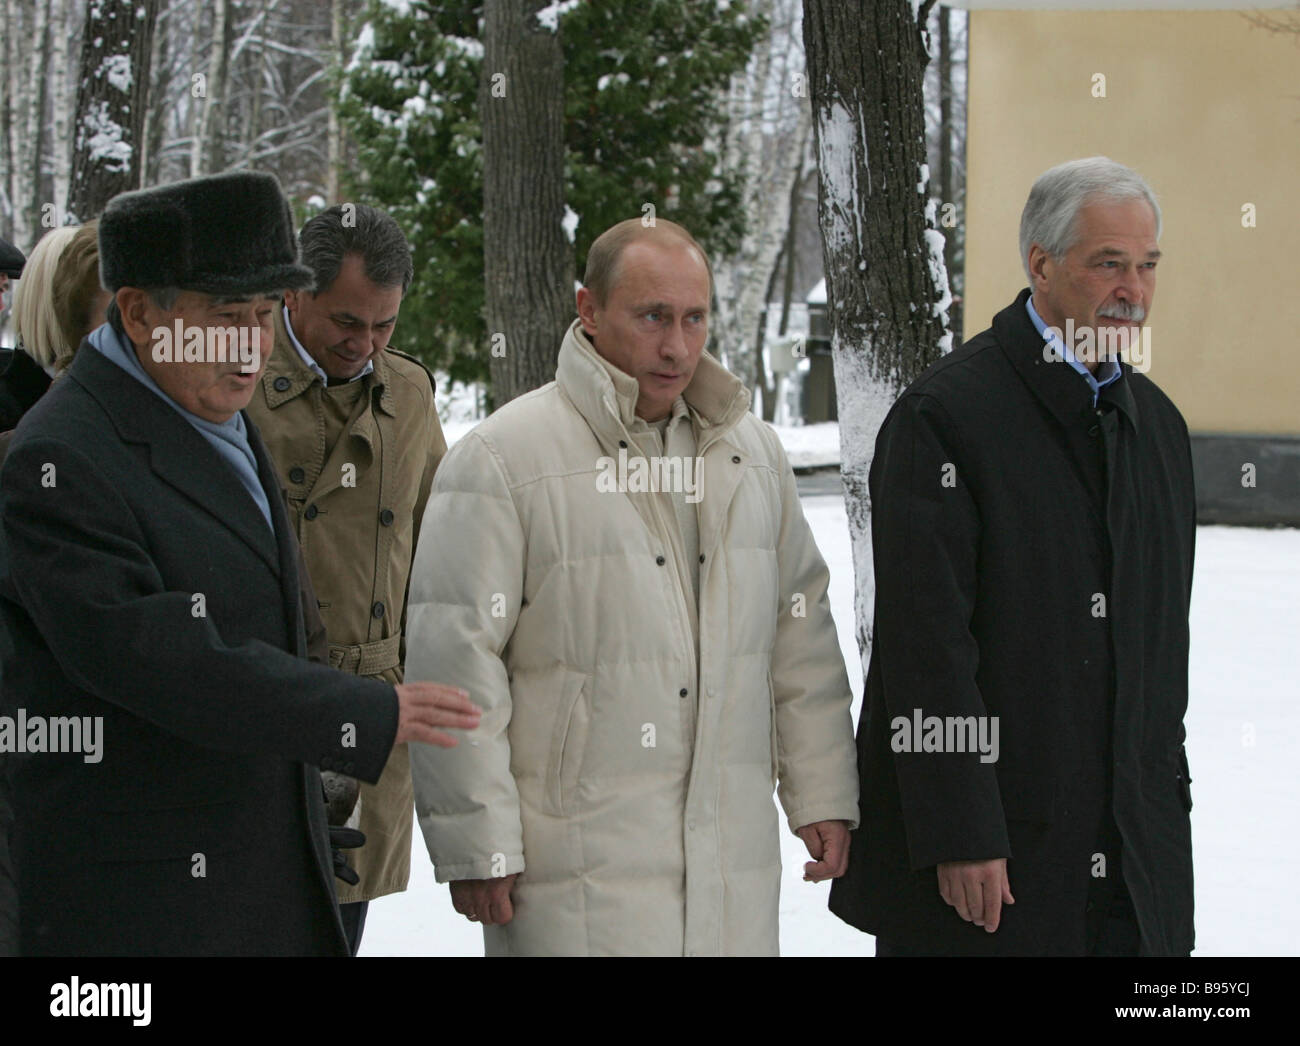 November 17 2007 Mintimer Shaimiyev left president of Tatarstan and co chairman of the Supreme Council of the United - Stock Image